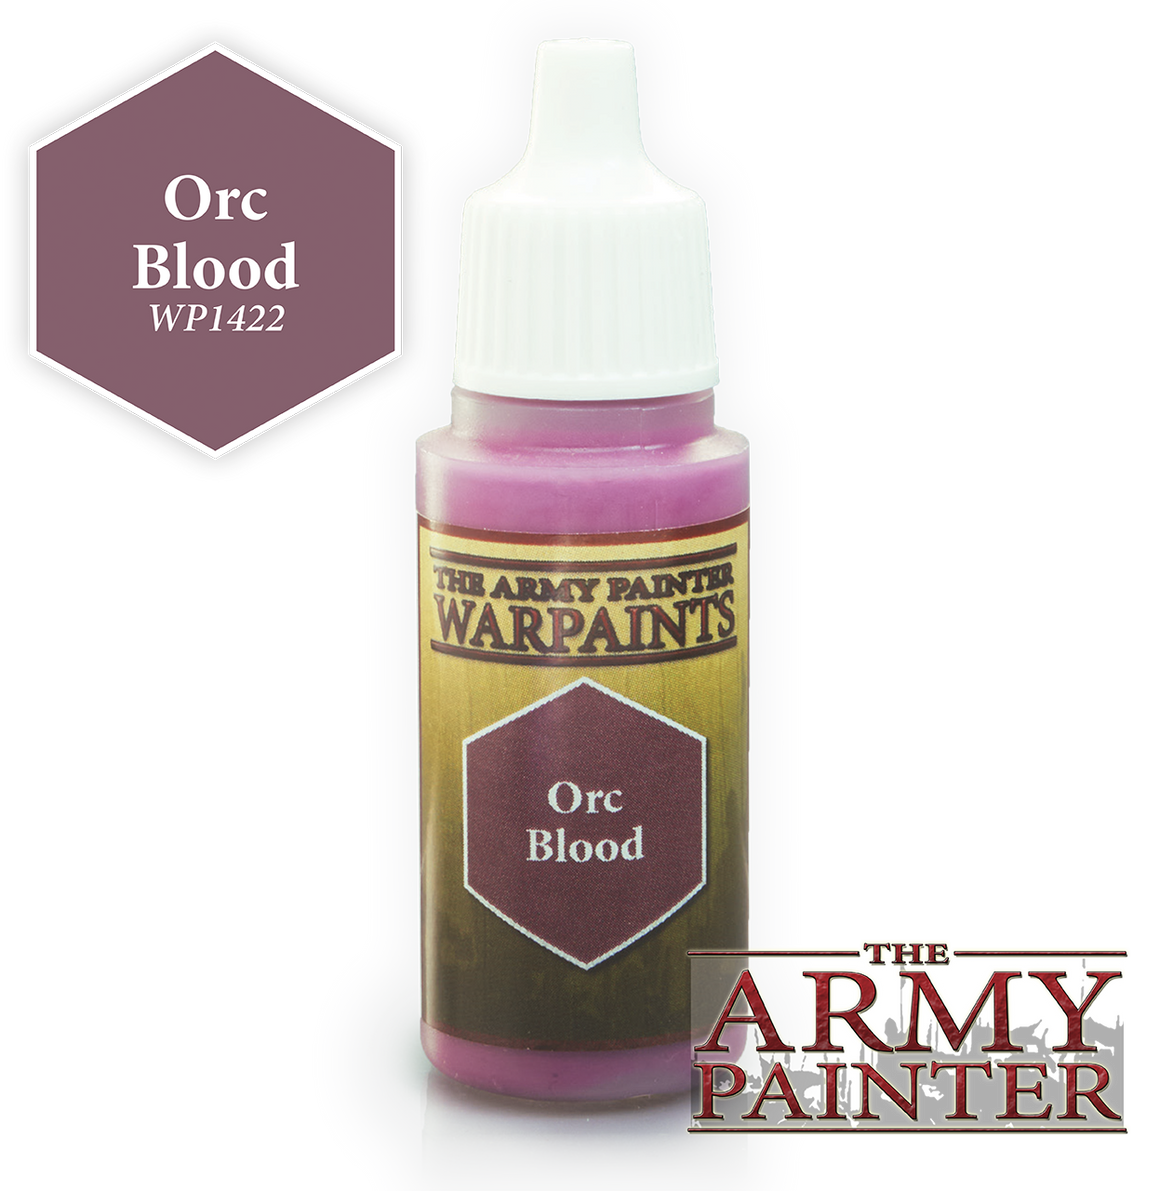 Army Painter Acrylic Warpaint - Orc Blood